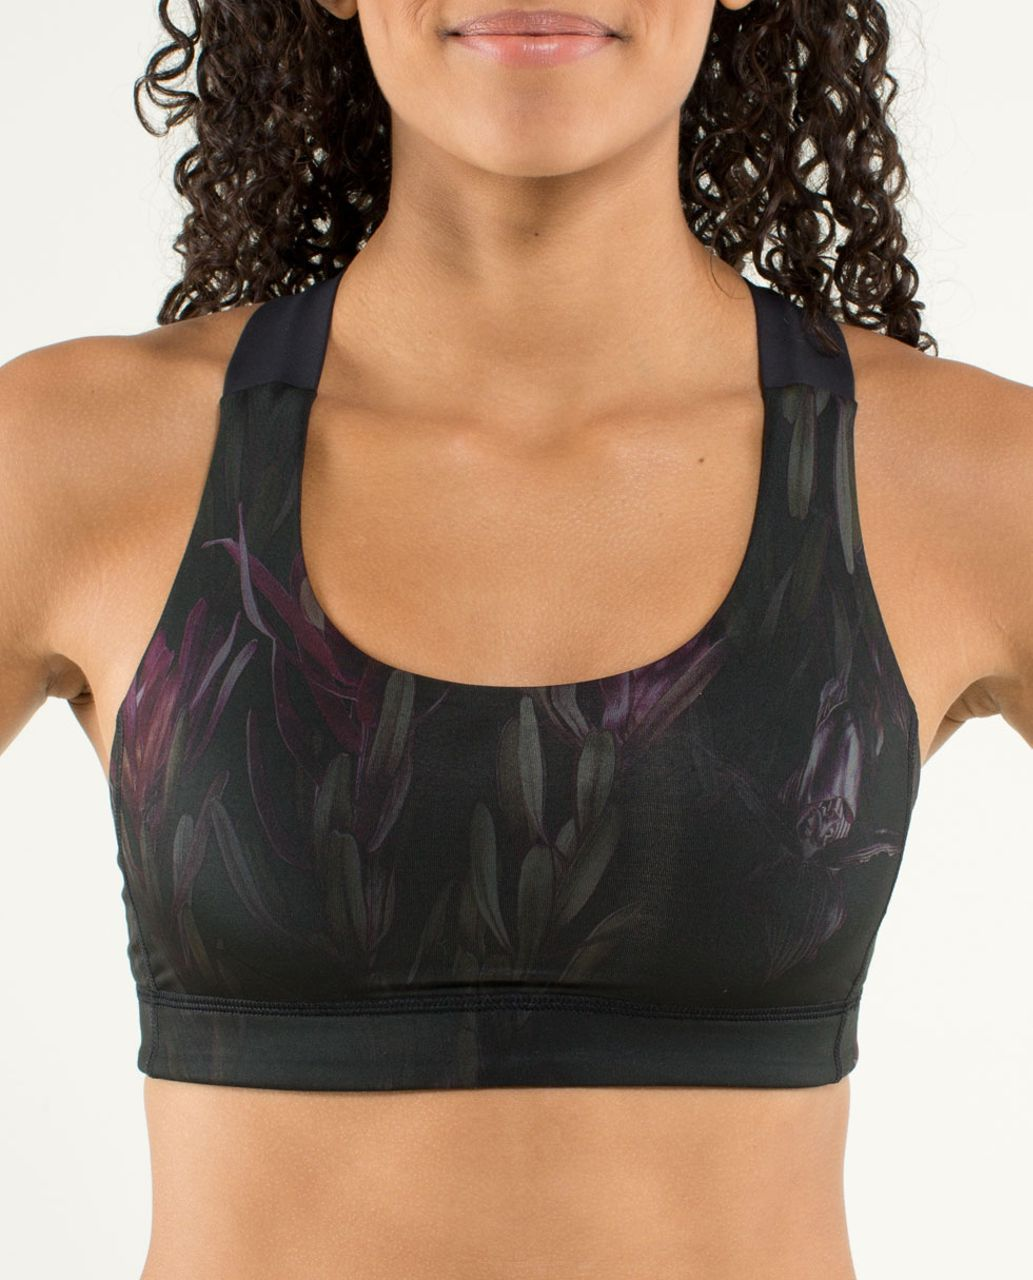 ab8a663bc7 Lululemon All Sport Bra - Midnight Iris Multi   Black - lulu fanatics